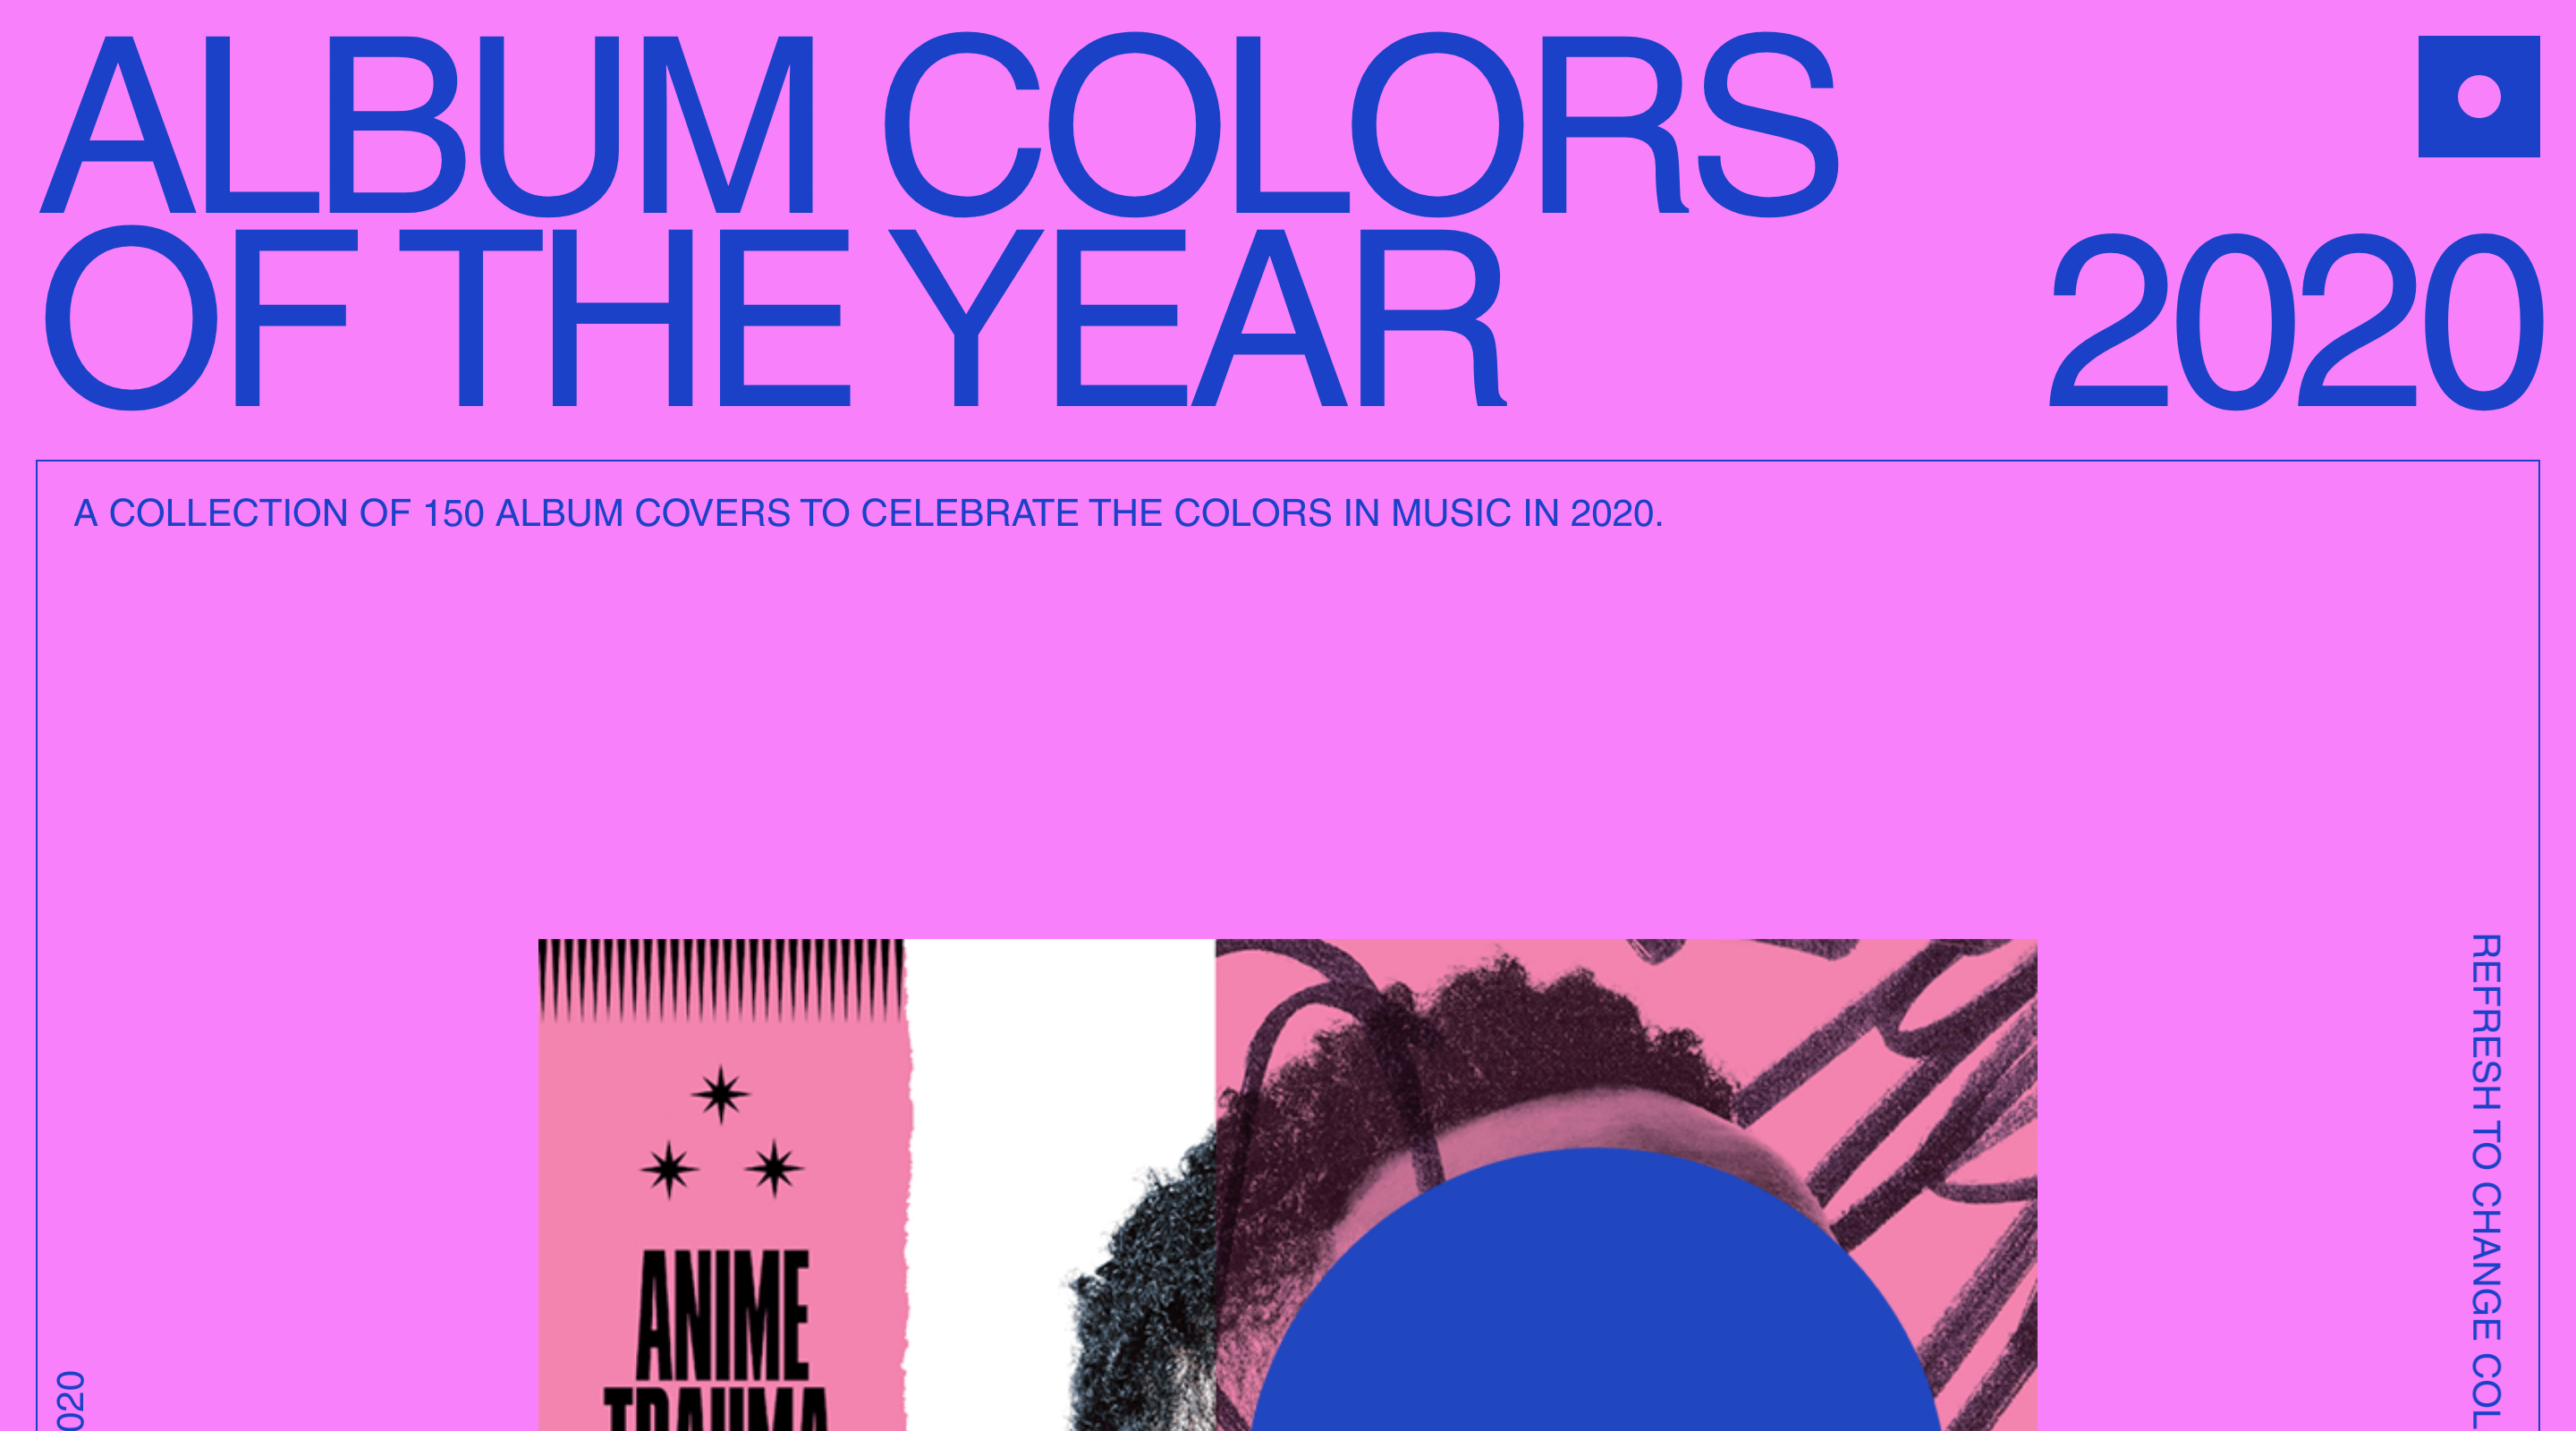 Album Colors Of The Year website